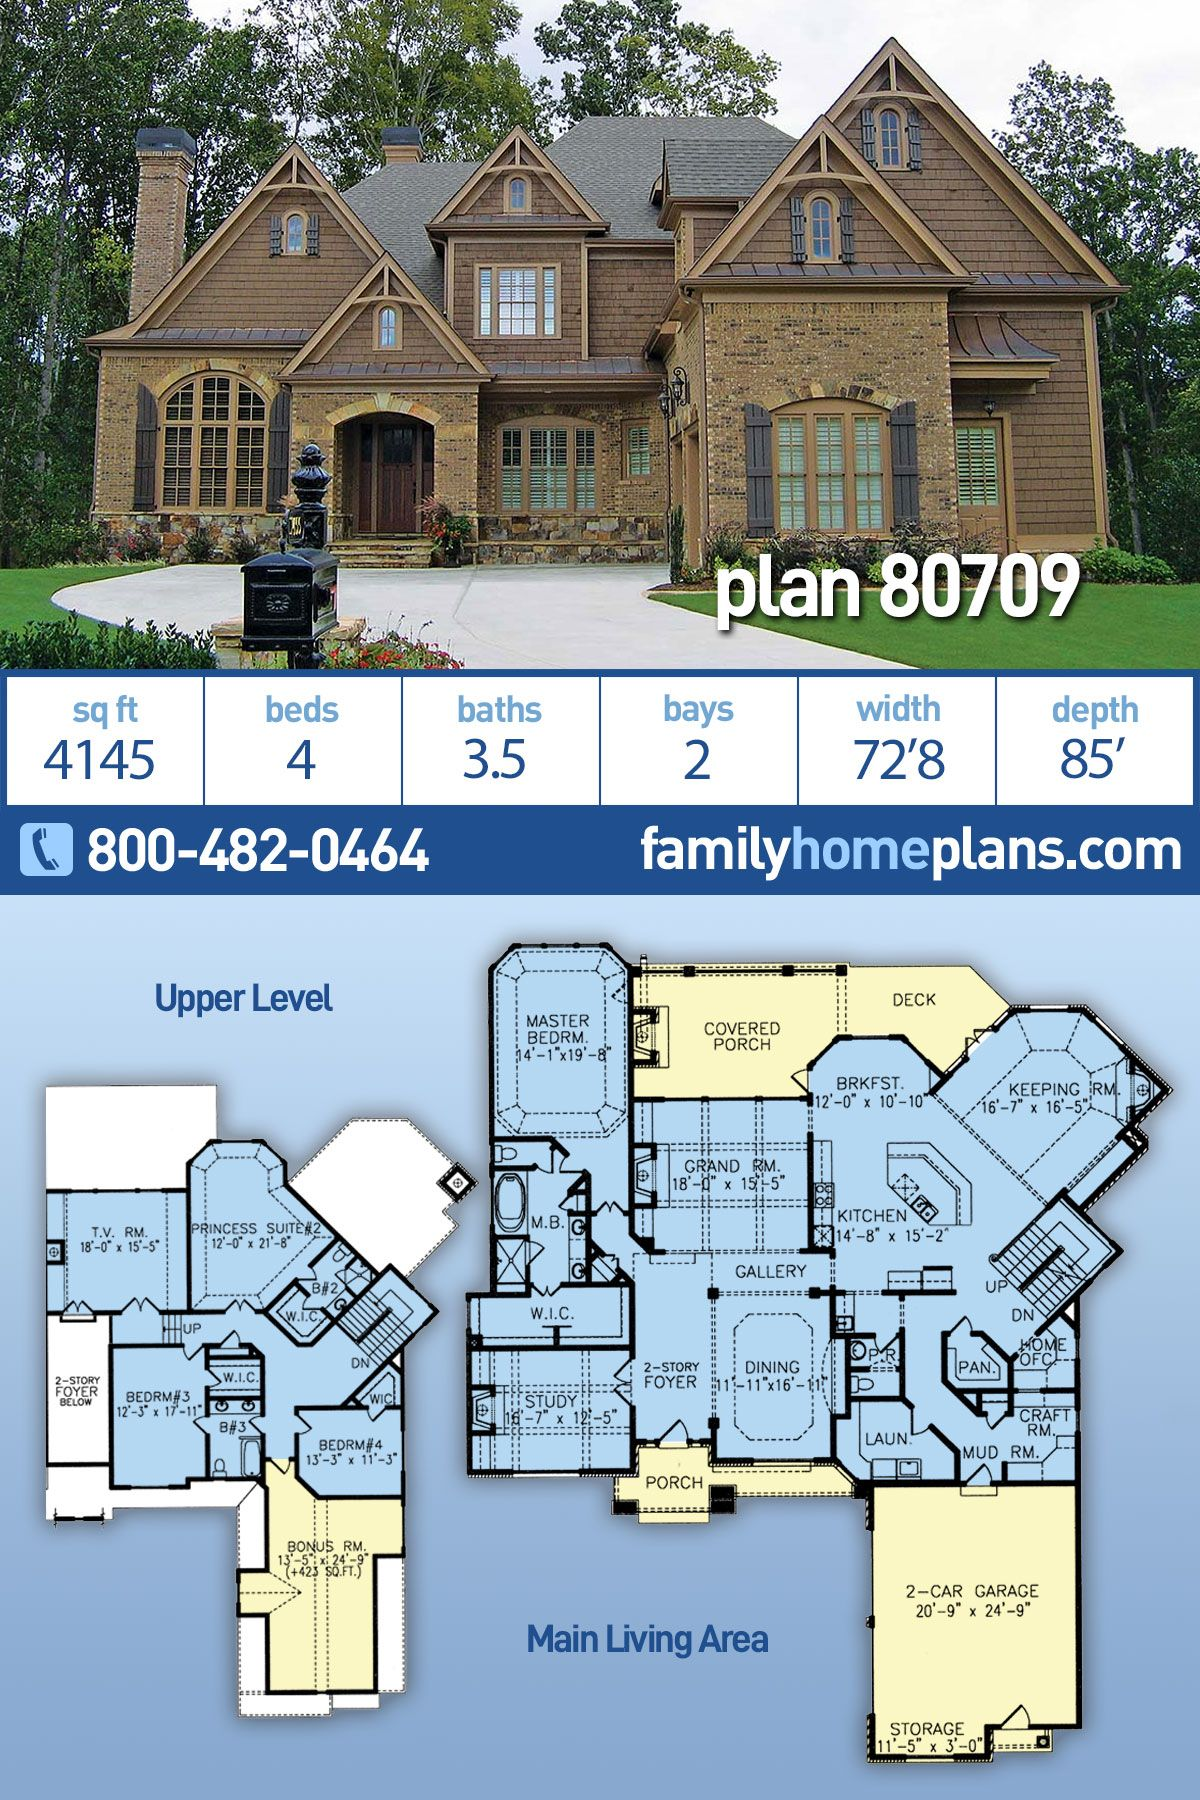 French Country Style House Plan 80709 With 4 Bed 4 Bath 2 Car Garage Country Style House Plans French Country House Plans House Plans